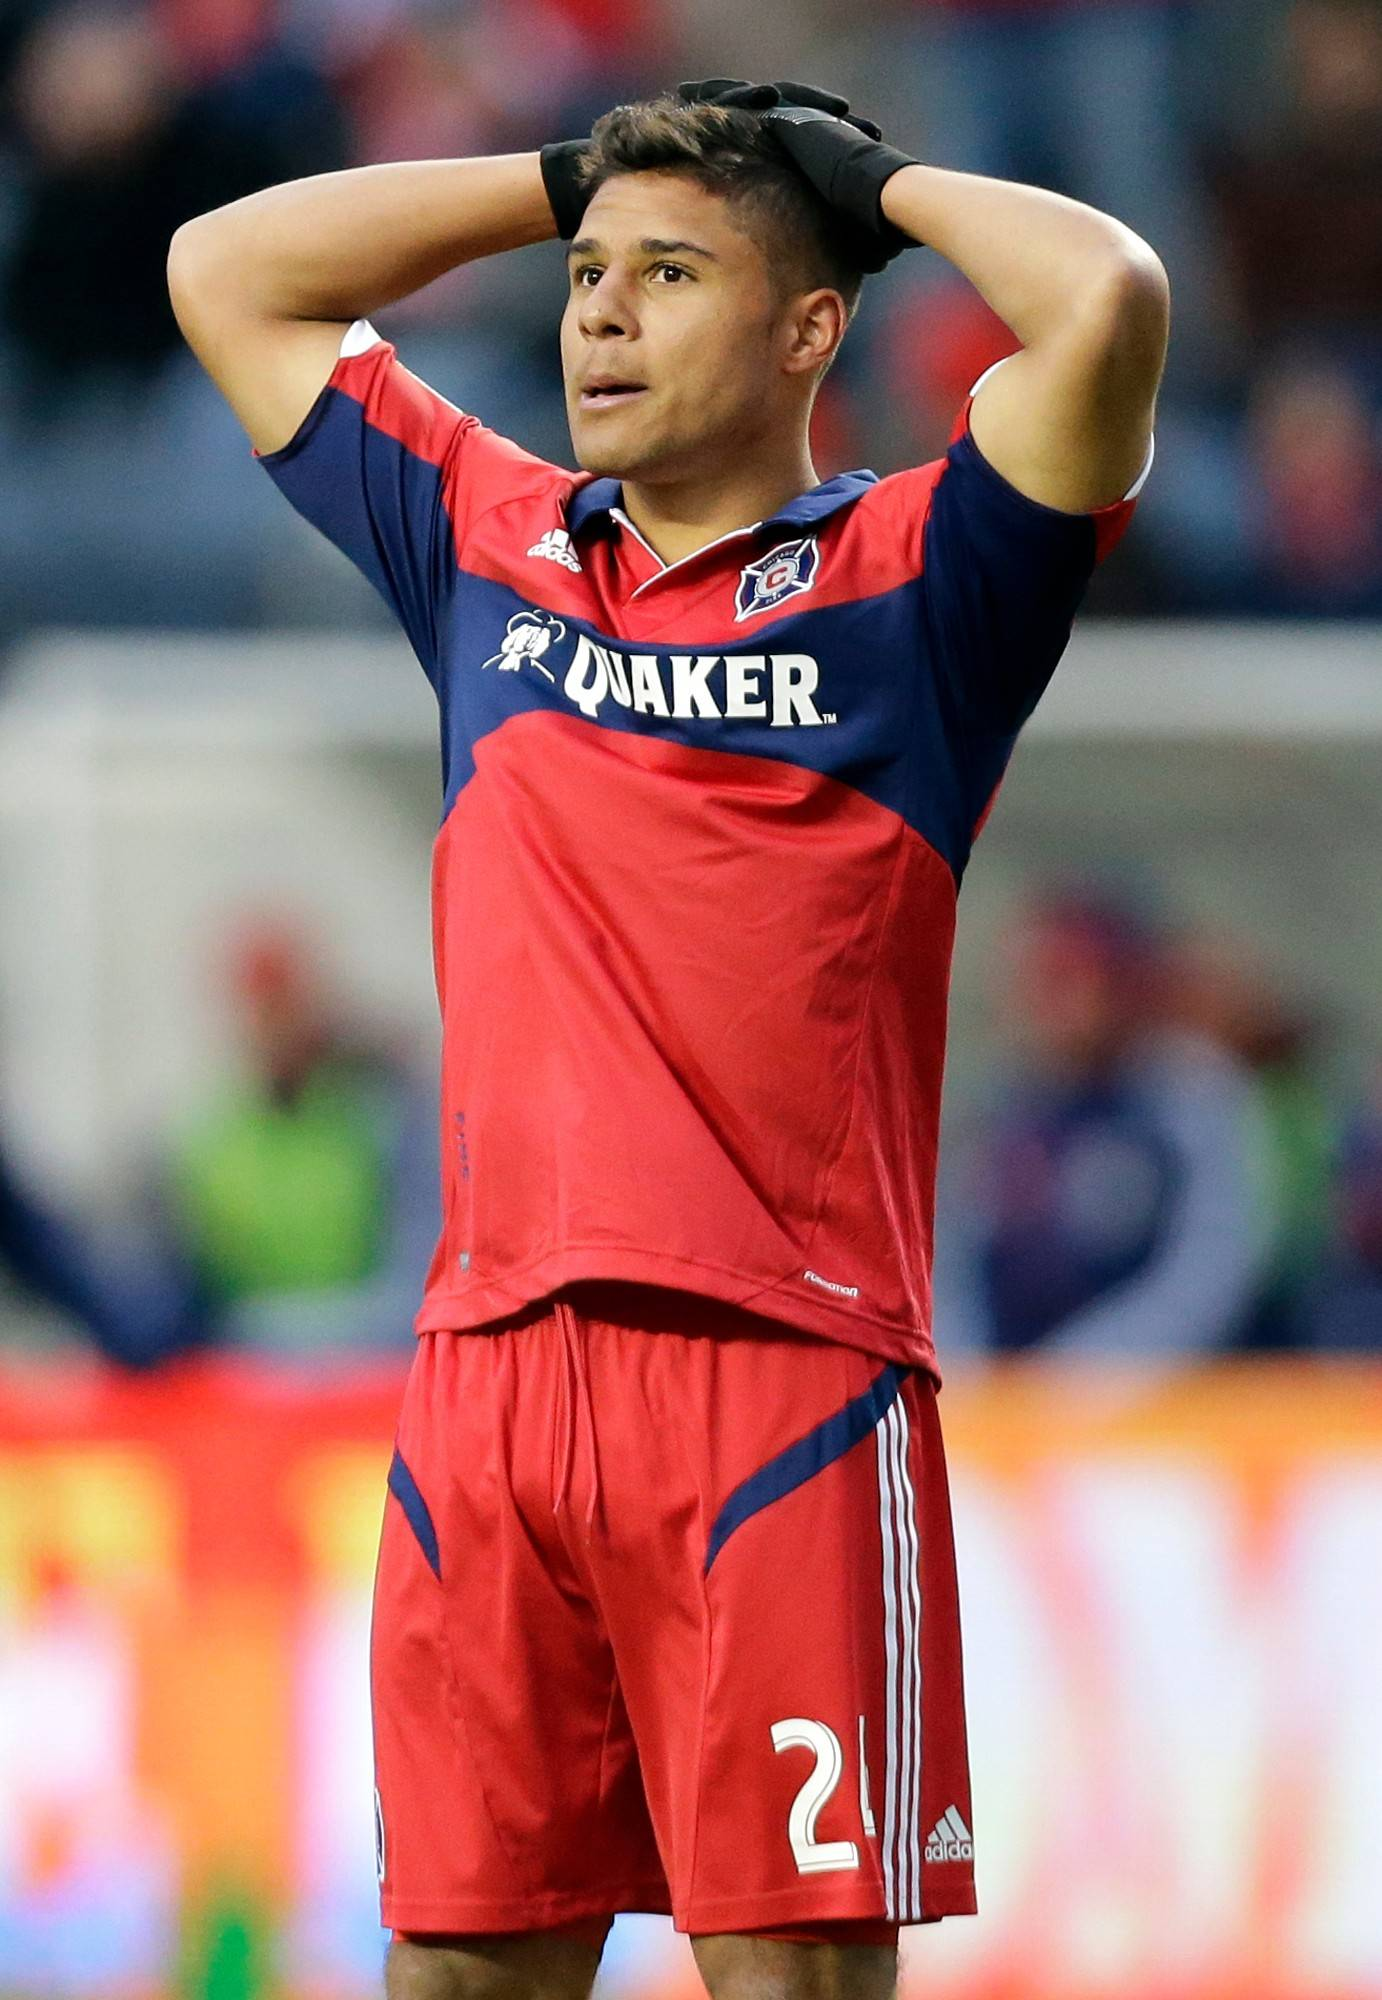 The Fire will have to chase its first win Saturday without leading scorerQuincy Amarikwa, who against New England two weeks ago earned two yellow cards and a suspension.